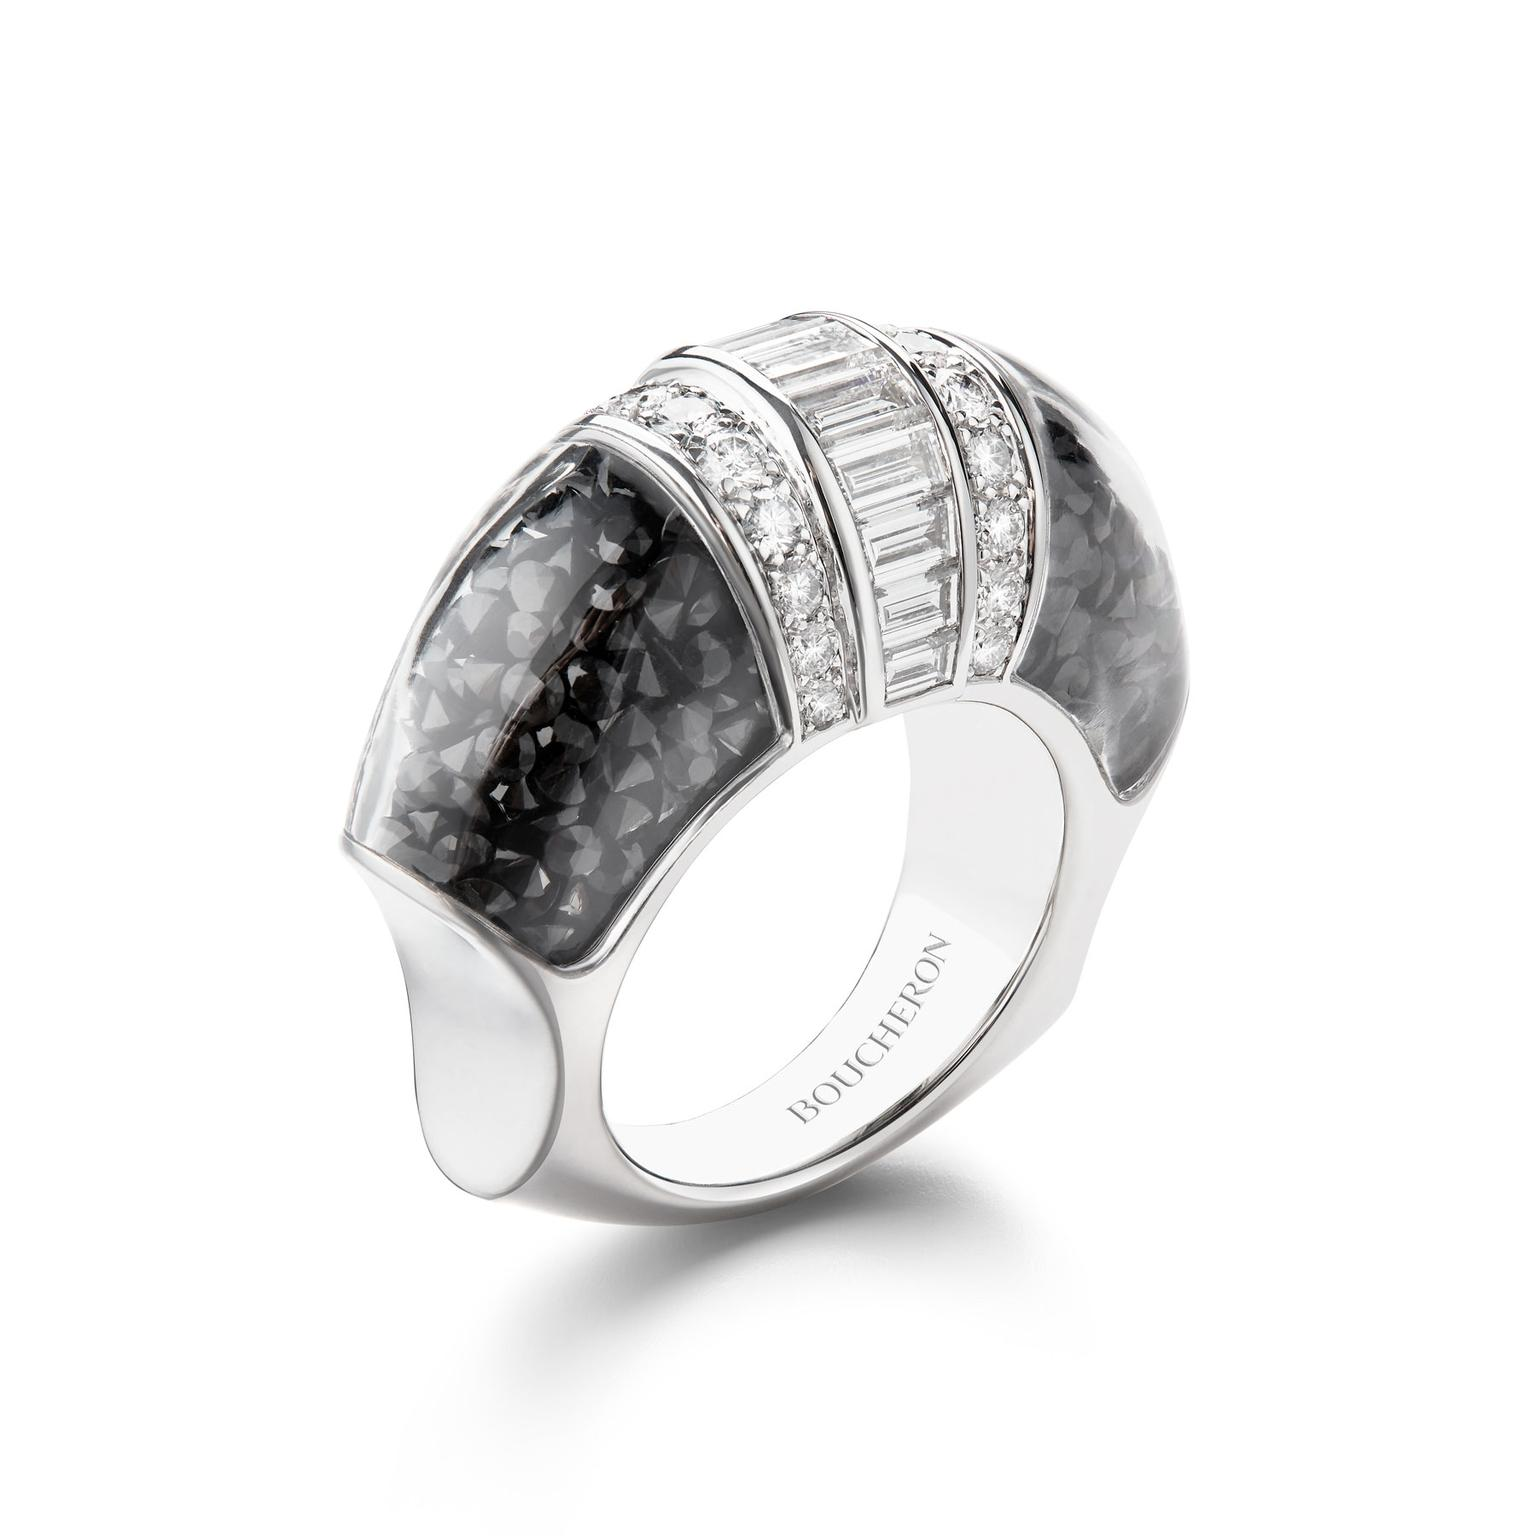 Boucheron Hiver Imperial Grand Nord ring with black spinels